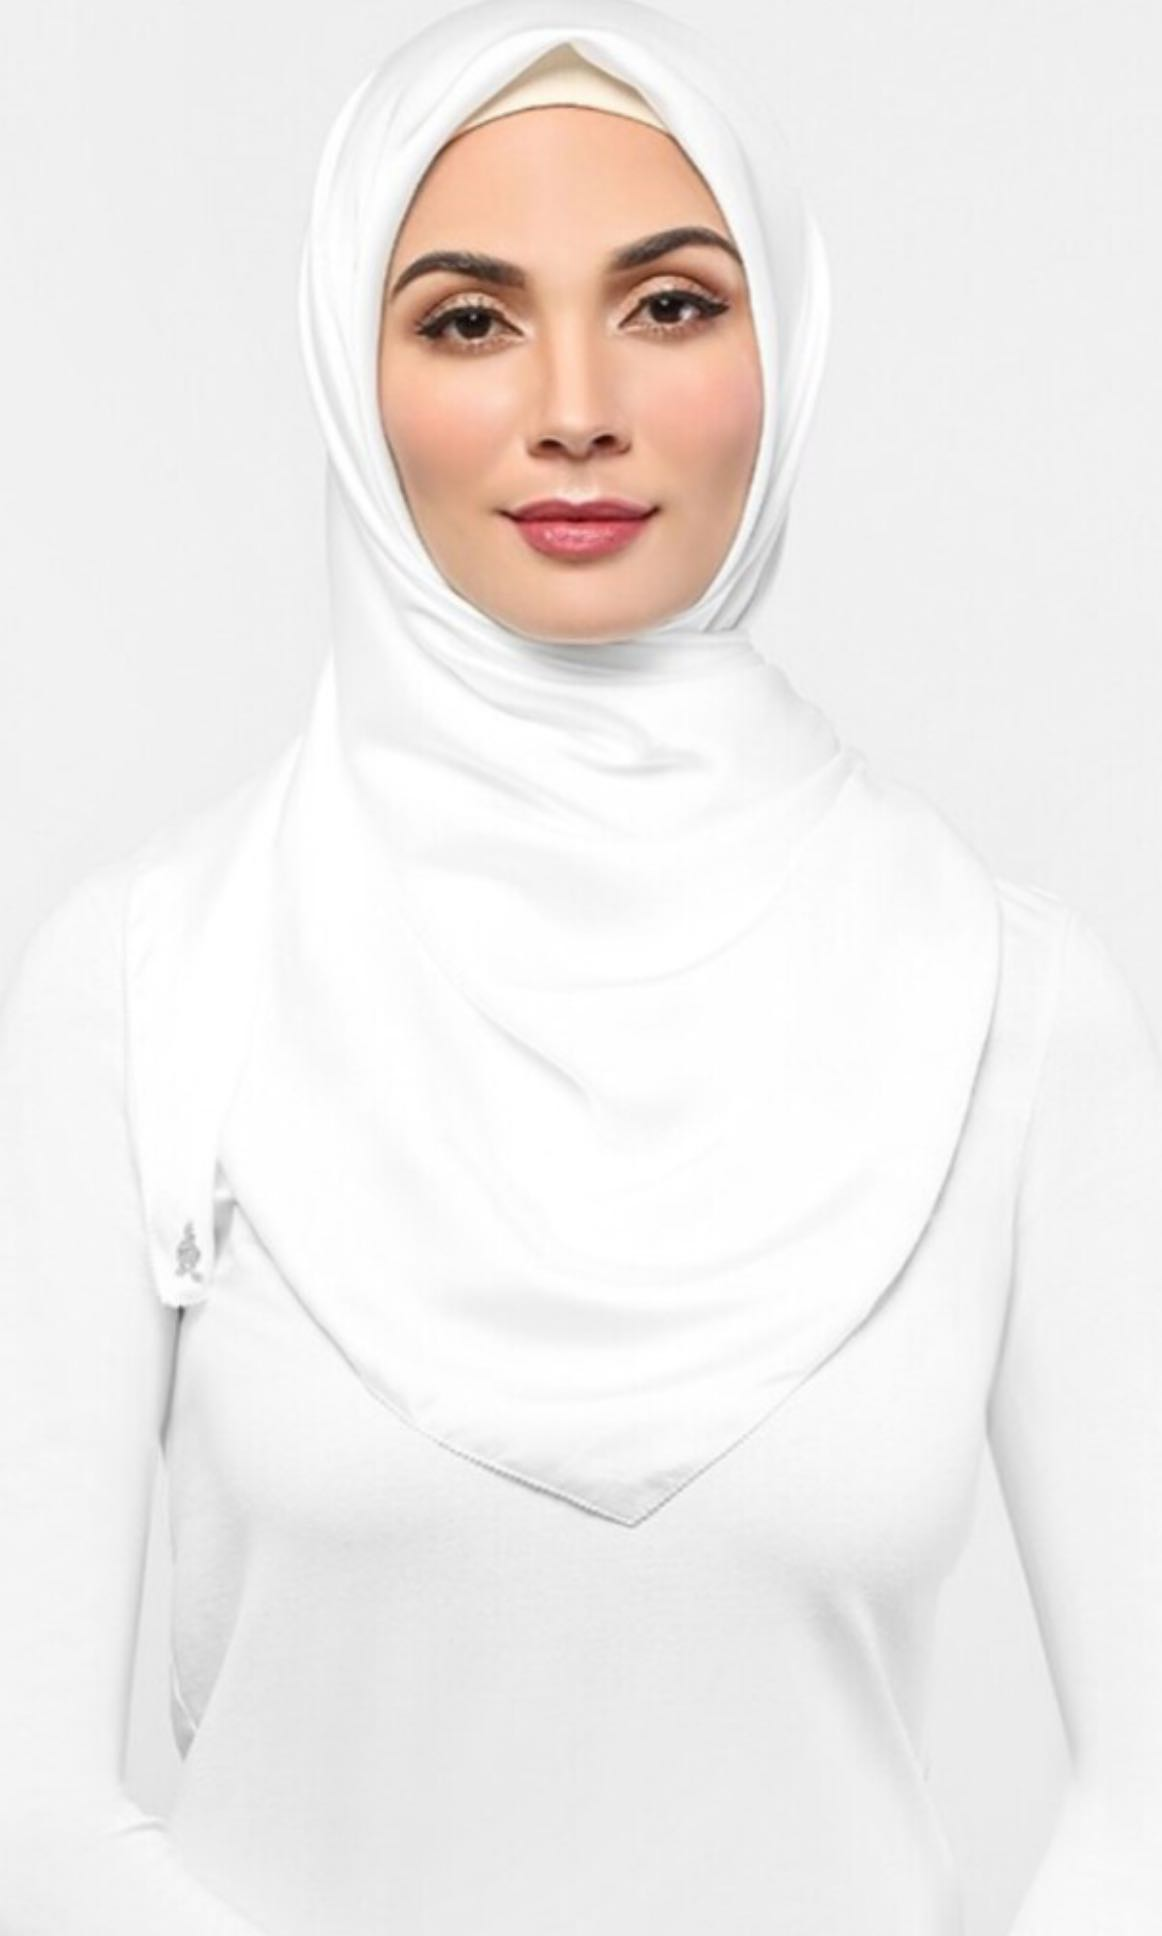 Duck Satin Silk Square Scarf In Lychee Muslimah Fashion Scarves On Hijab Segitiga Buble Georgete Carousell